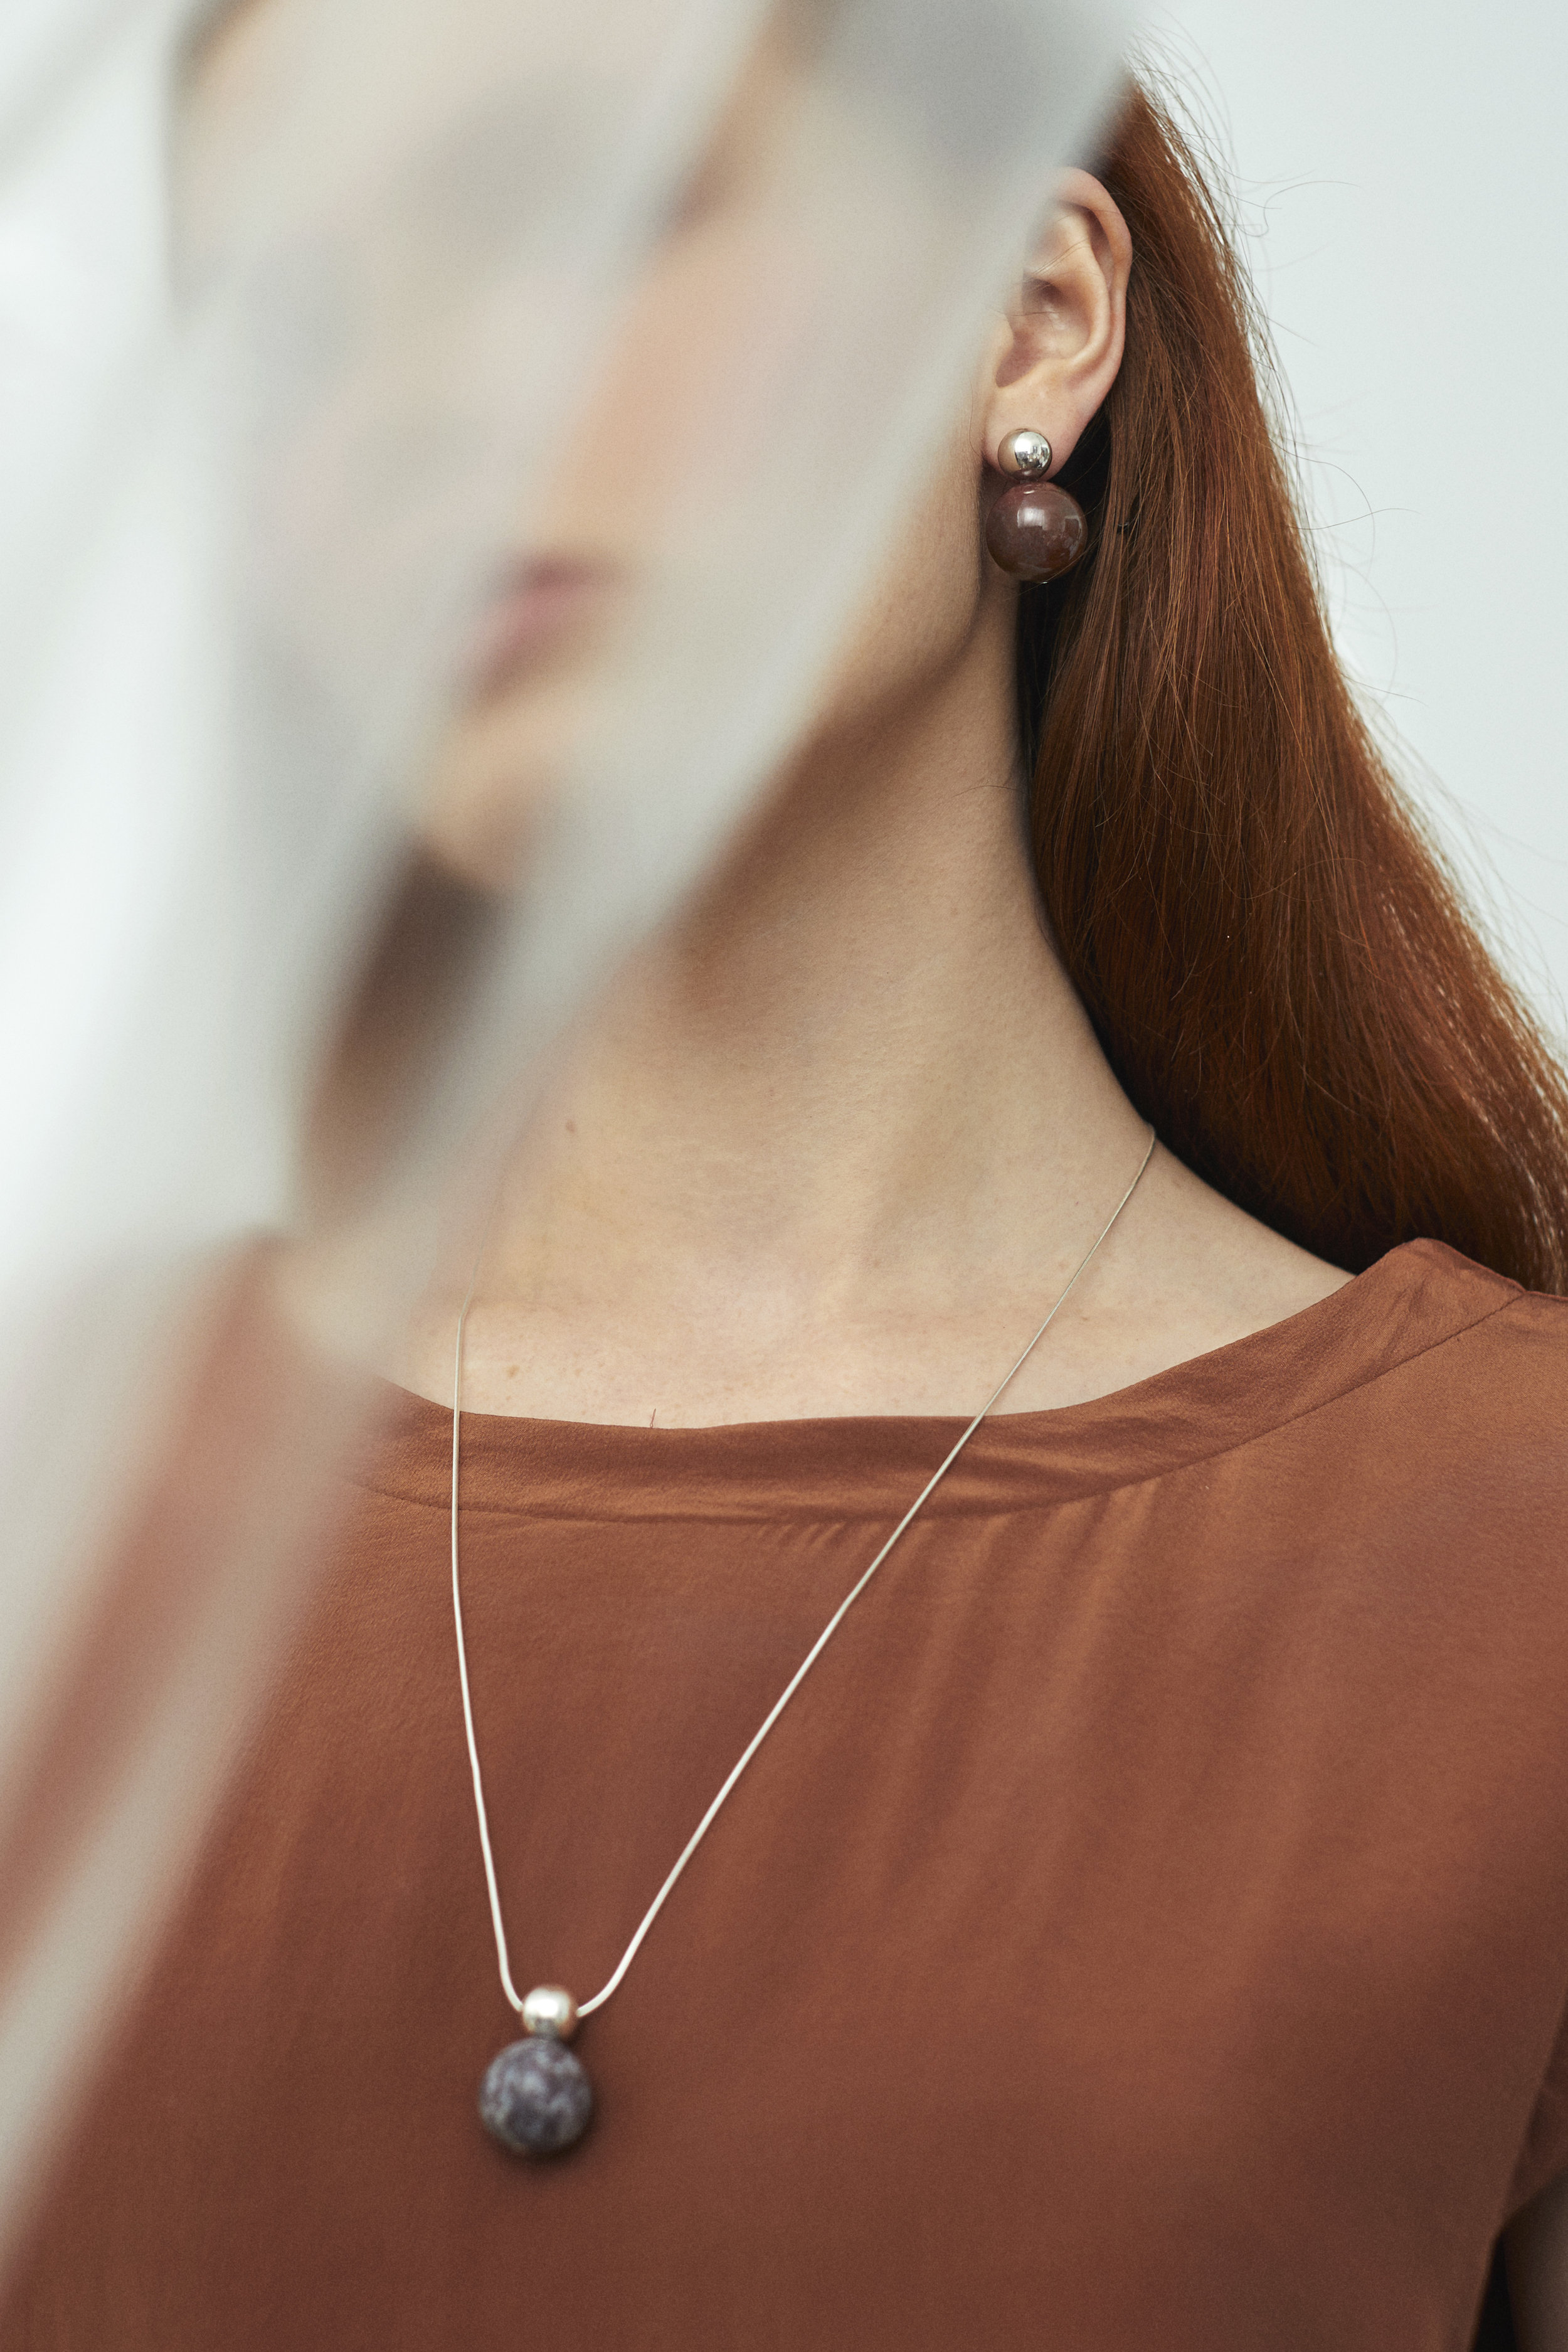 ▲ HEARTZ earrings and necklace